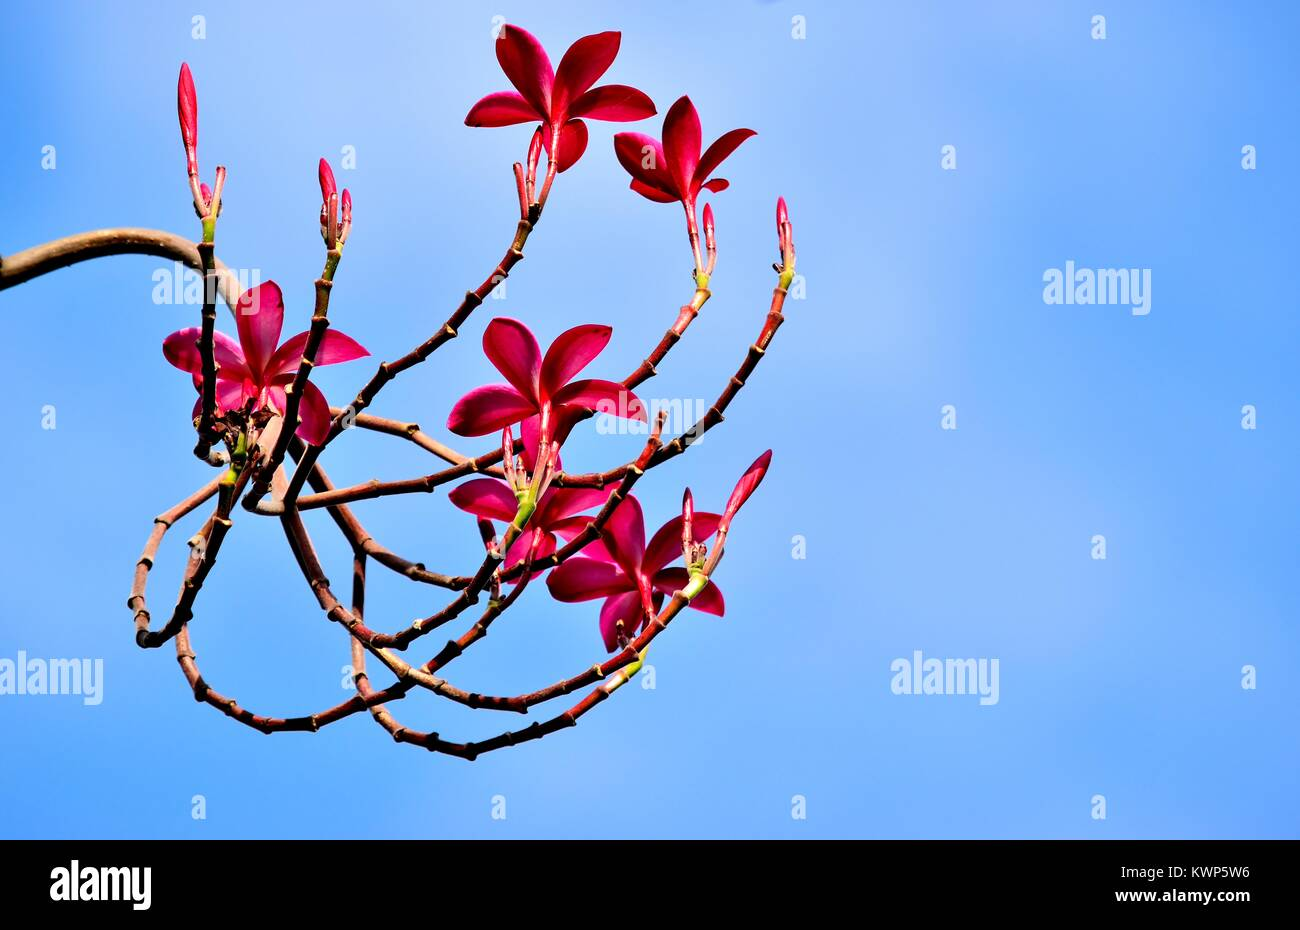 A spray of beautiful red tropical frangipani or plumeria blossoms against a clear blue sky - Stock Image